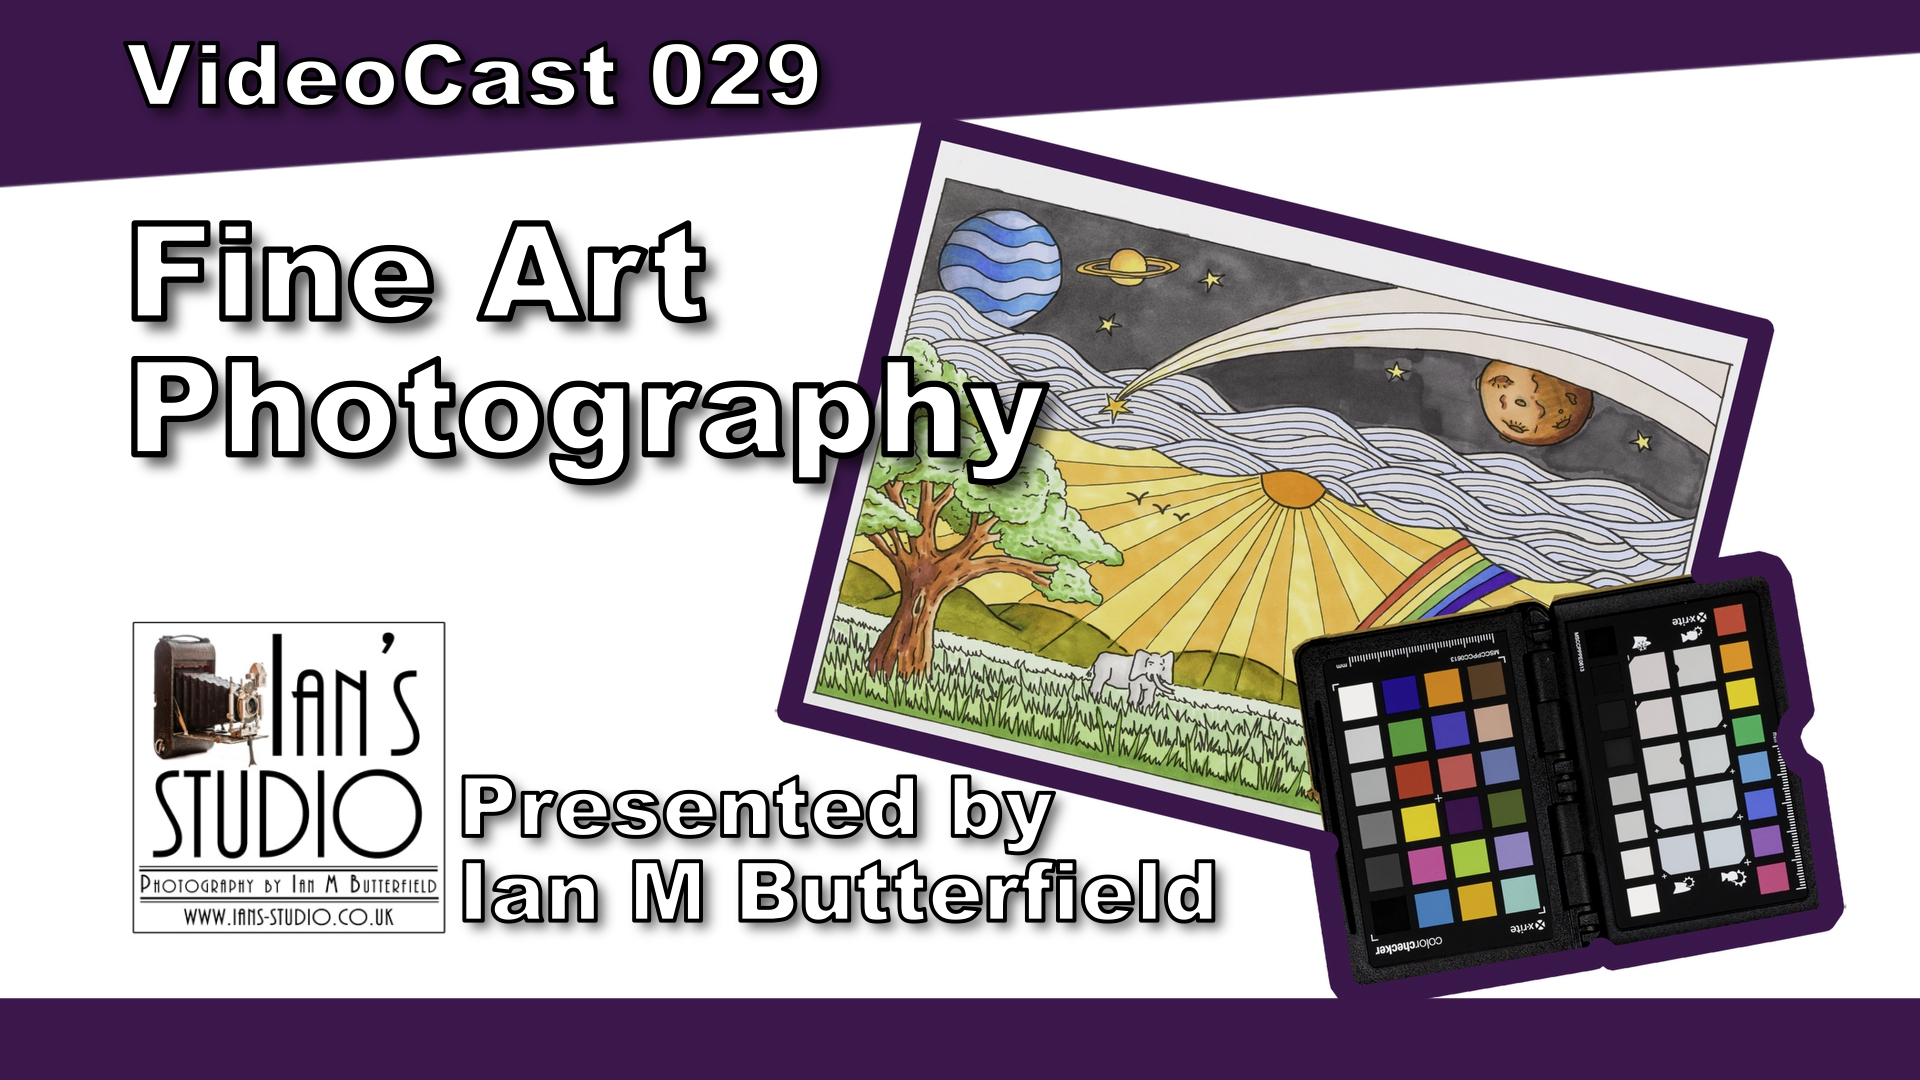 How to photograph Fine Art using a colorchecker passport [VideoCast 029]